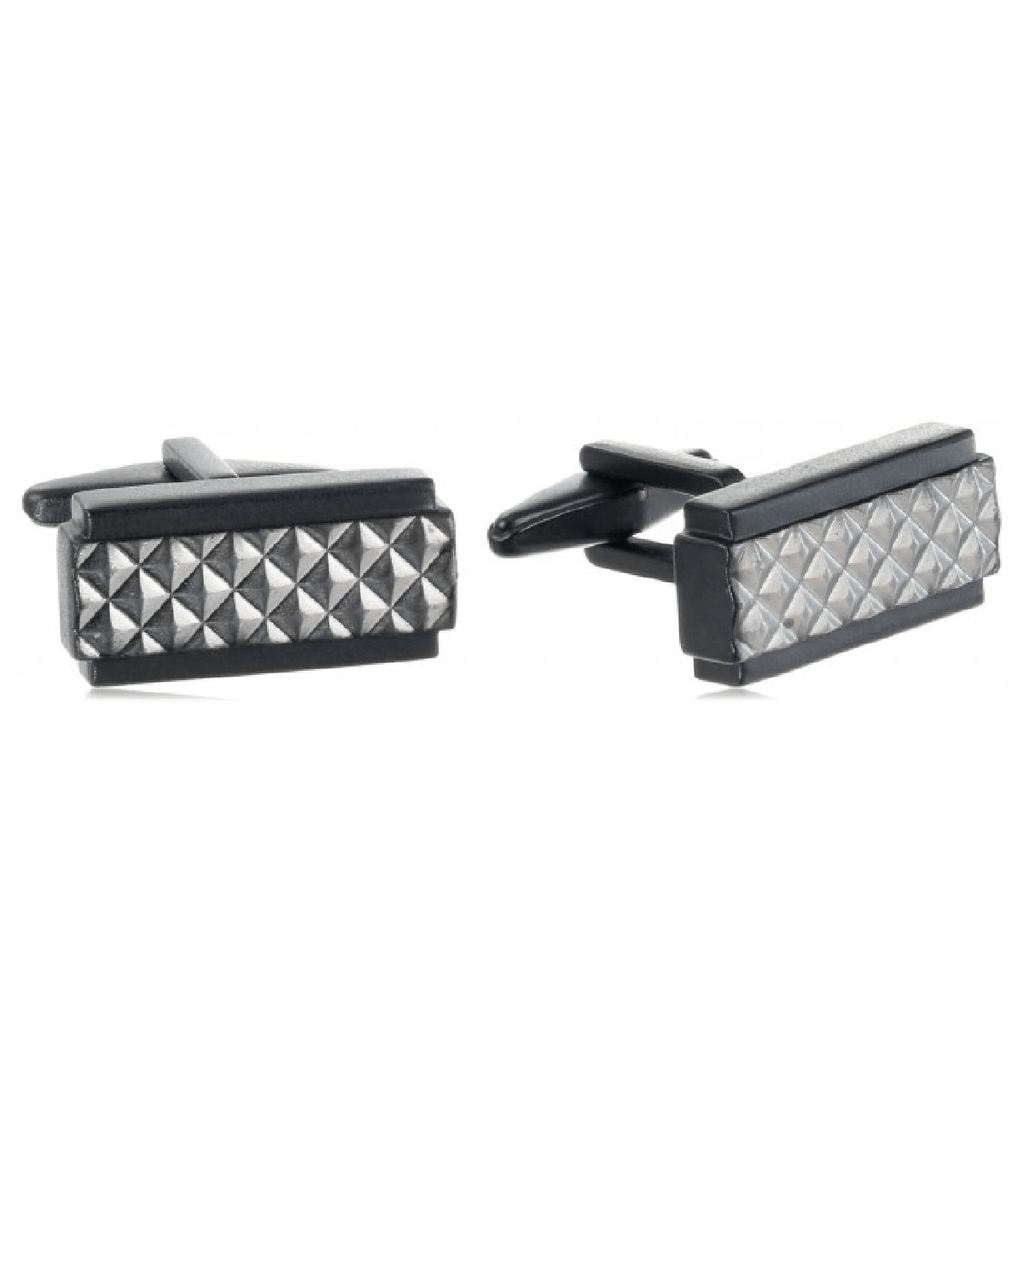 Kenneth Cole Reaction Matte Black Rectangle w/ Brushed Hematite Diamond Cufflinks-Fashionbarn shop-Fashionbarn shop